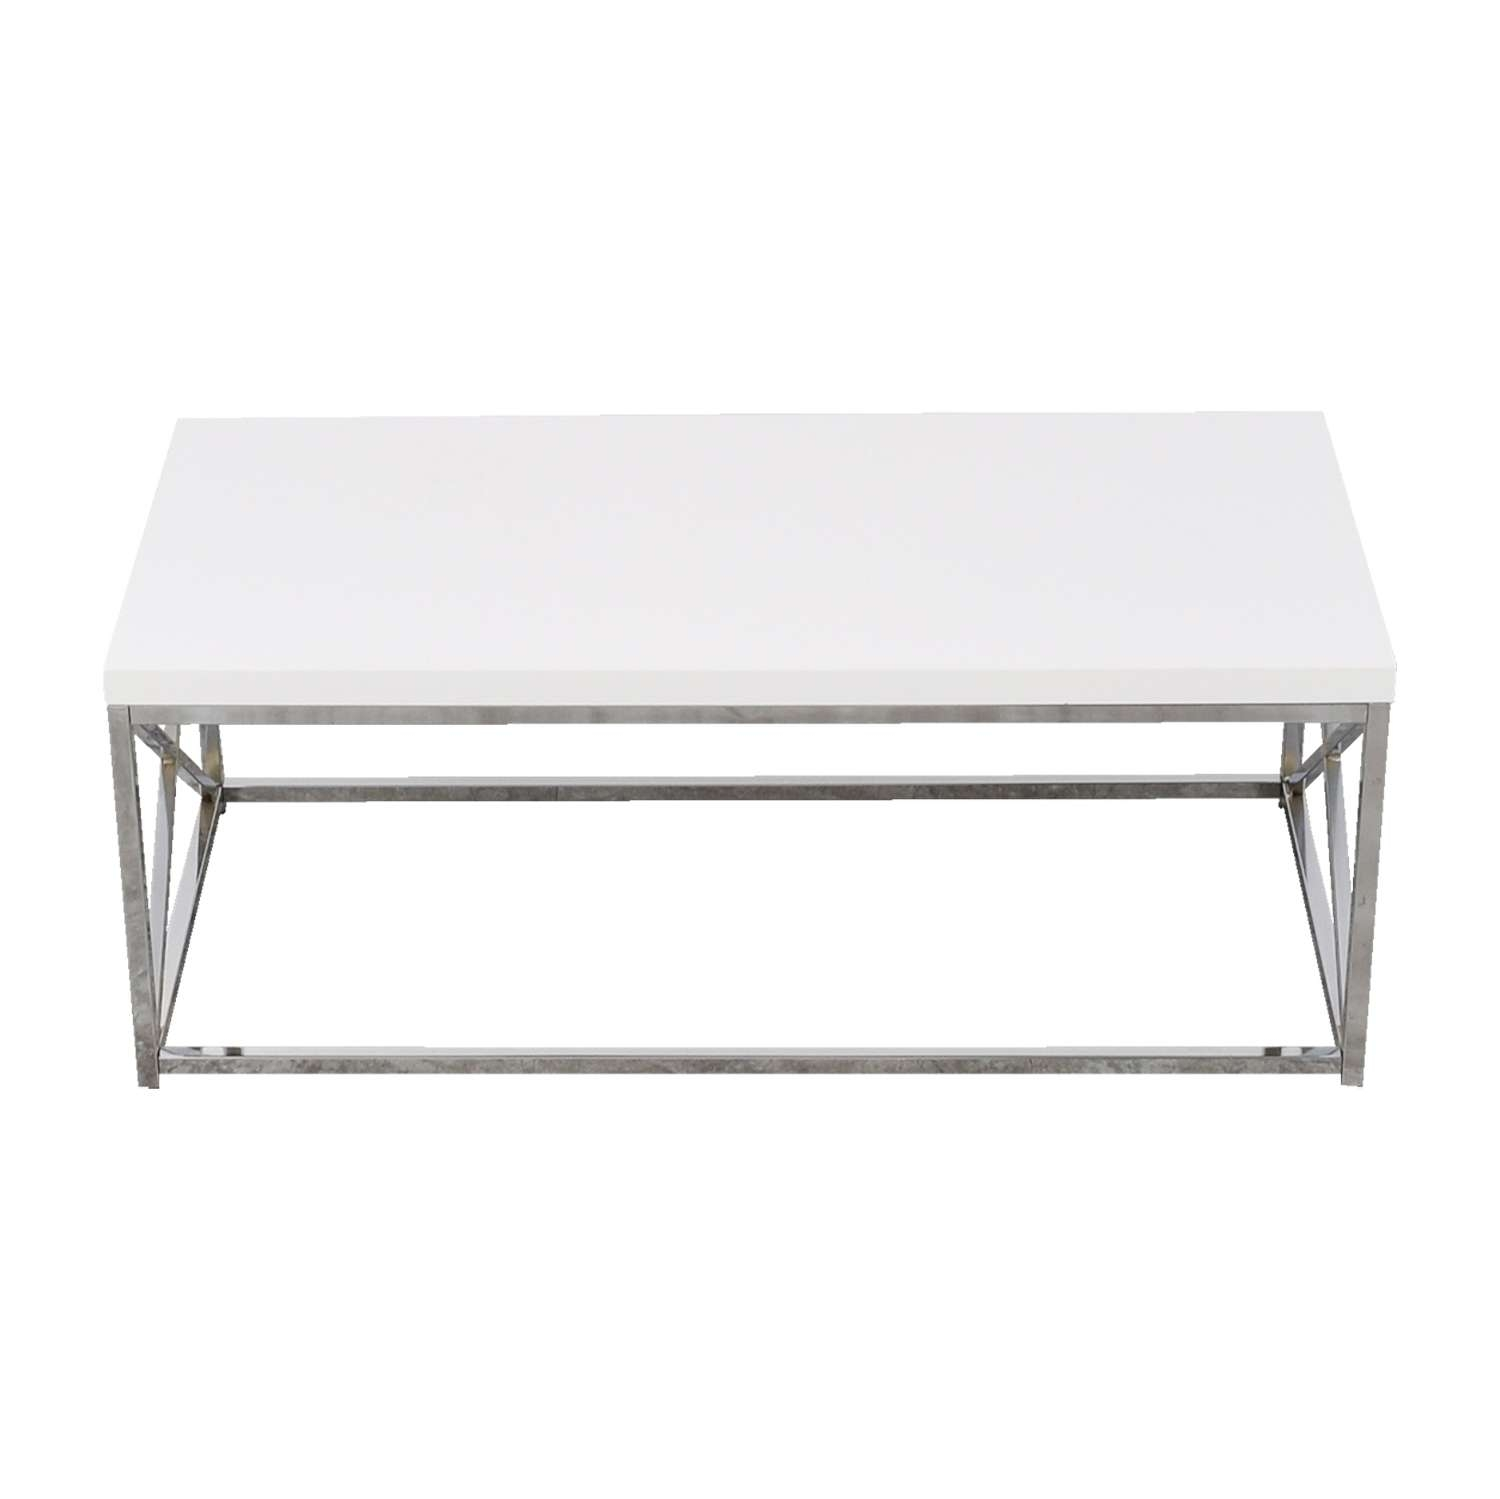 [%Famous Chrome Coffee Table Bases In 40% Off – White Top With Chrome Base Coffee Table / Tables|40% Off – White Top With Chrome Base Coffee Table / Tables Inside Fashionable Chrome Coffee Table Bases%] (View 1 of 20)